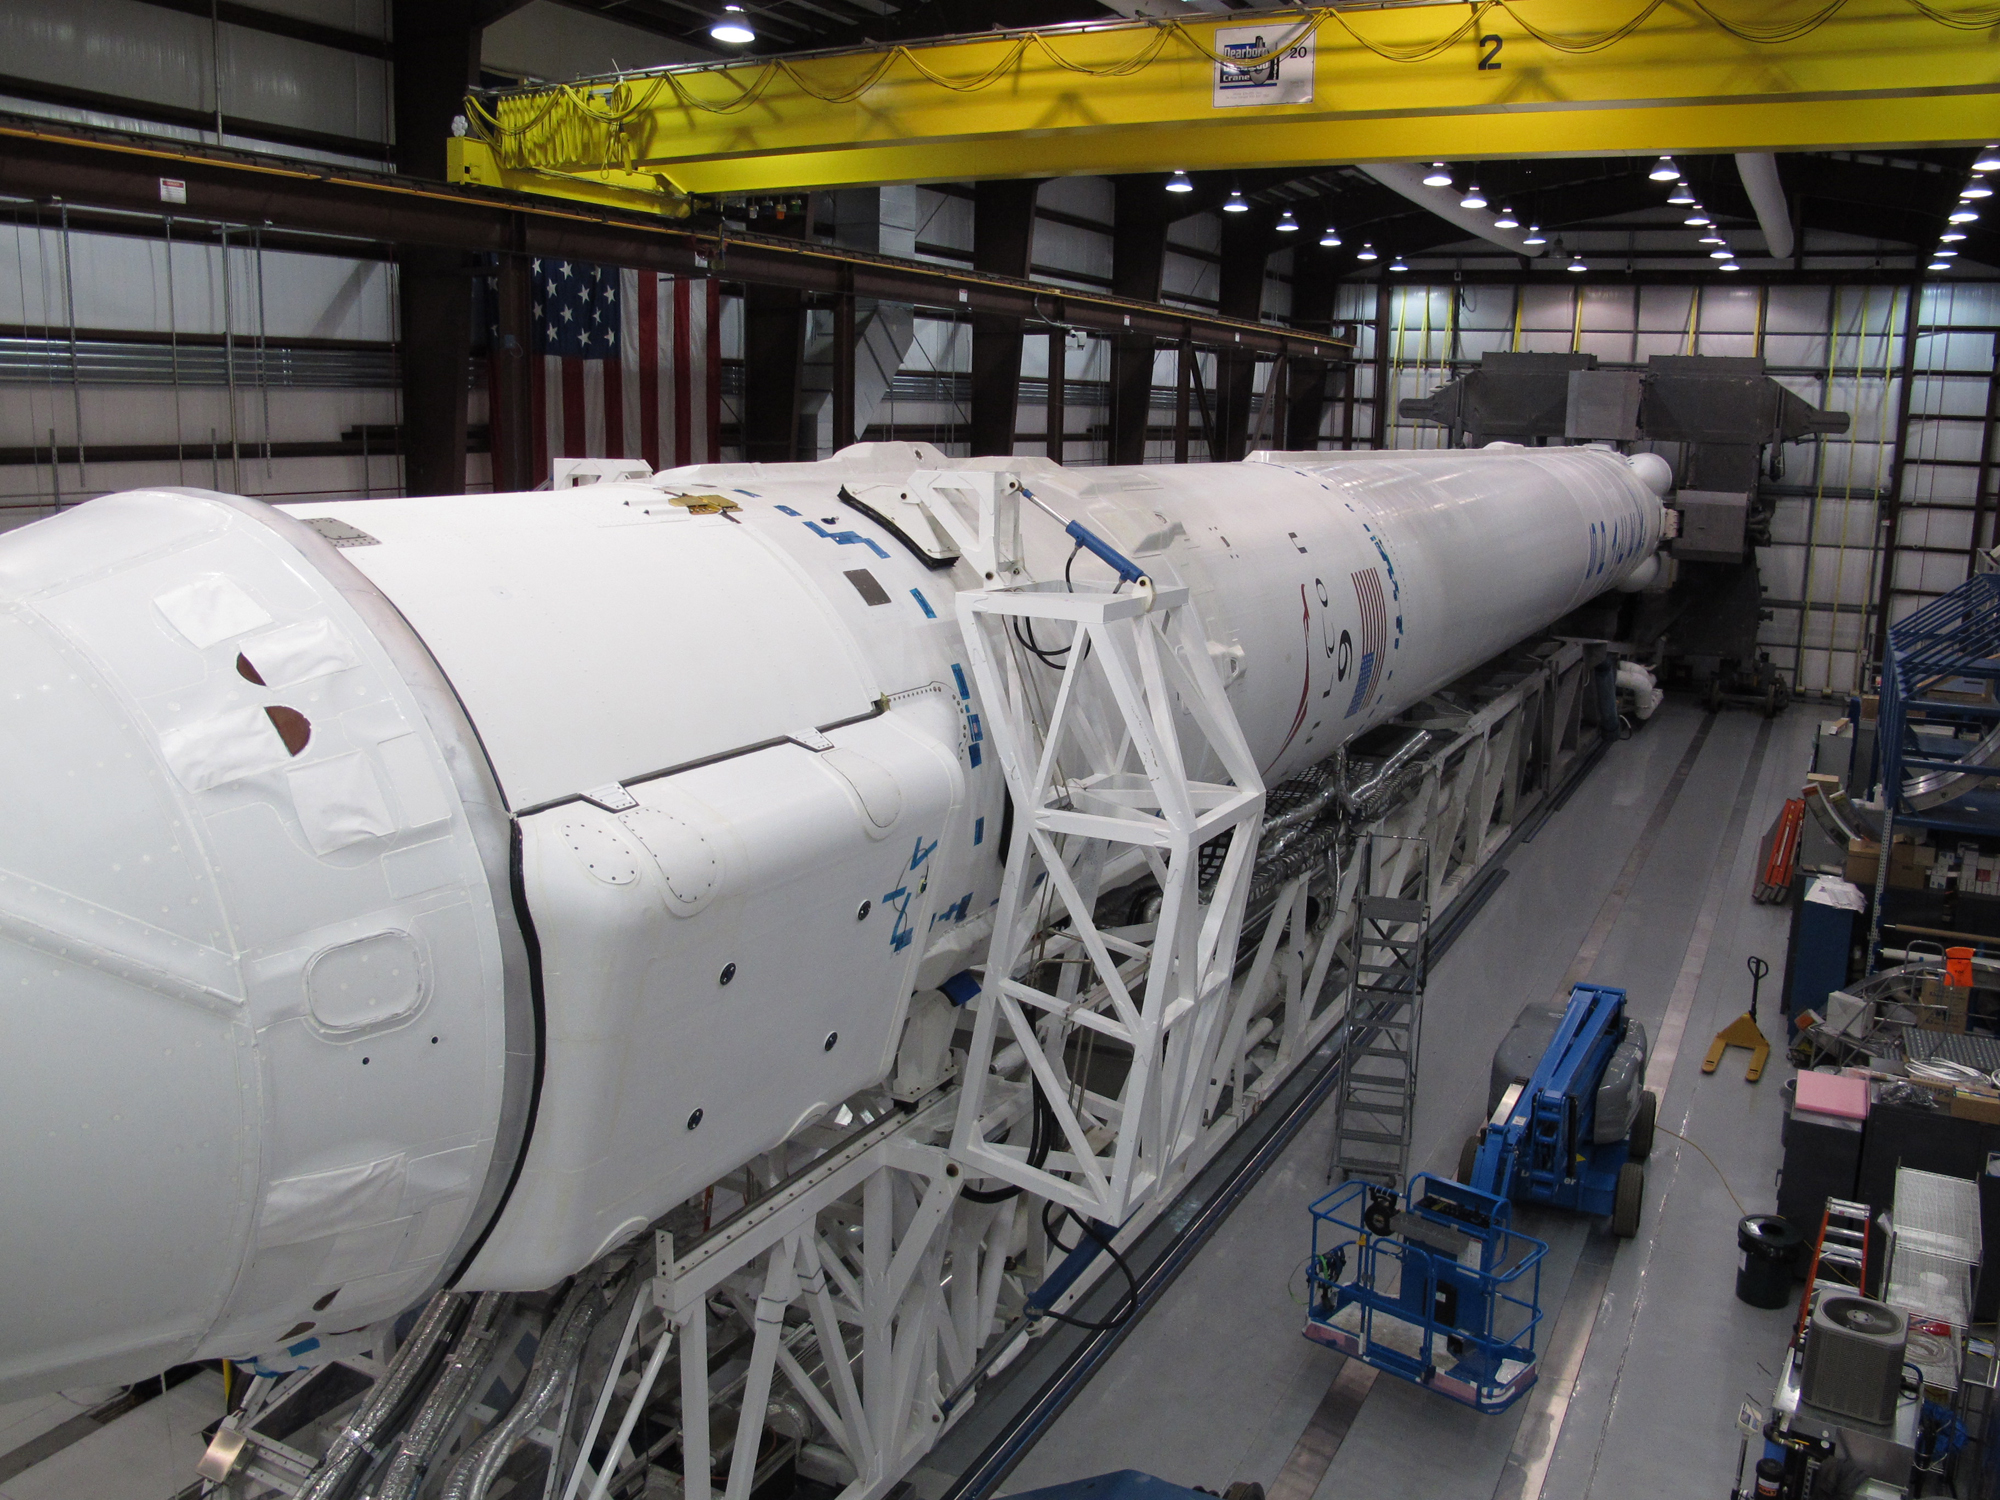 SpaceX Falcon 9 Rocket Mated for Launch: CRS-2